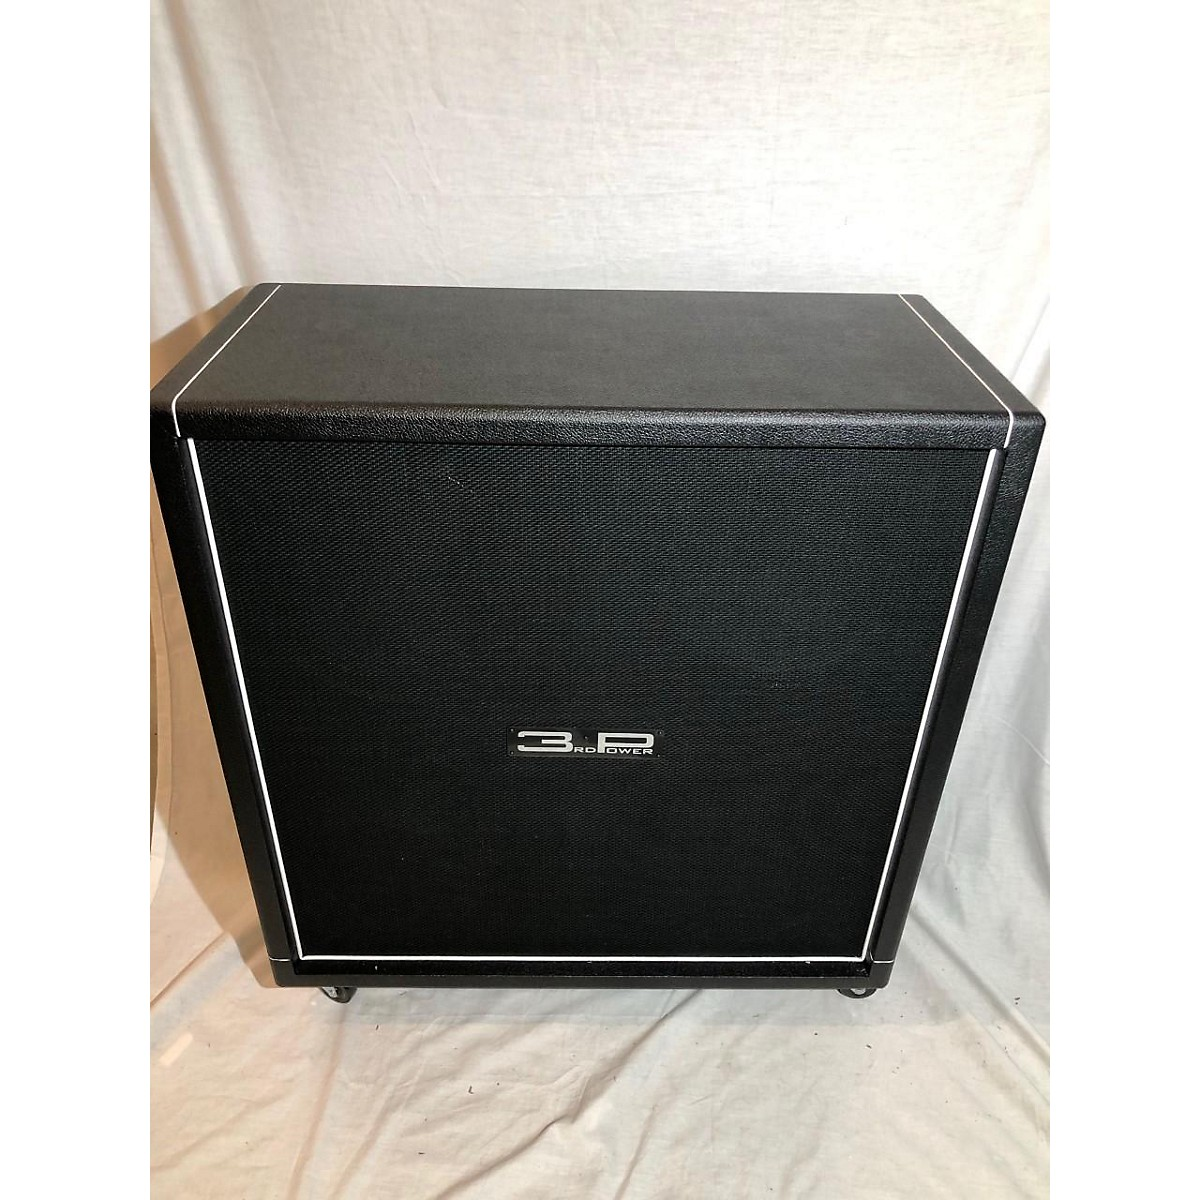 3rd Power Amps Dream Series 4x12 Guitar Cabinet